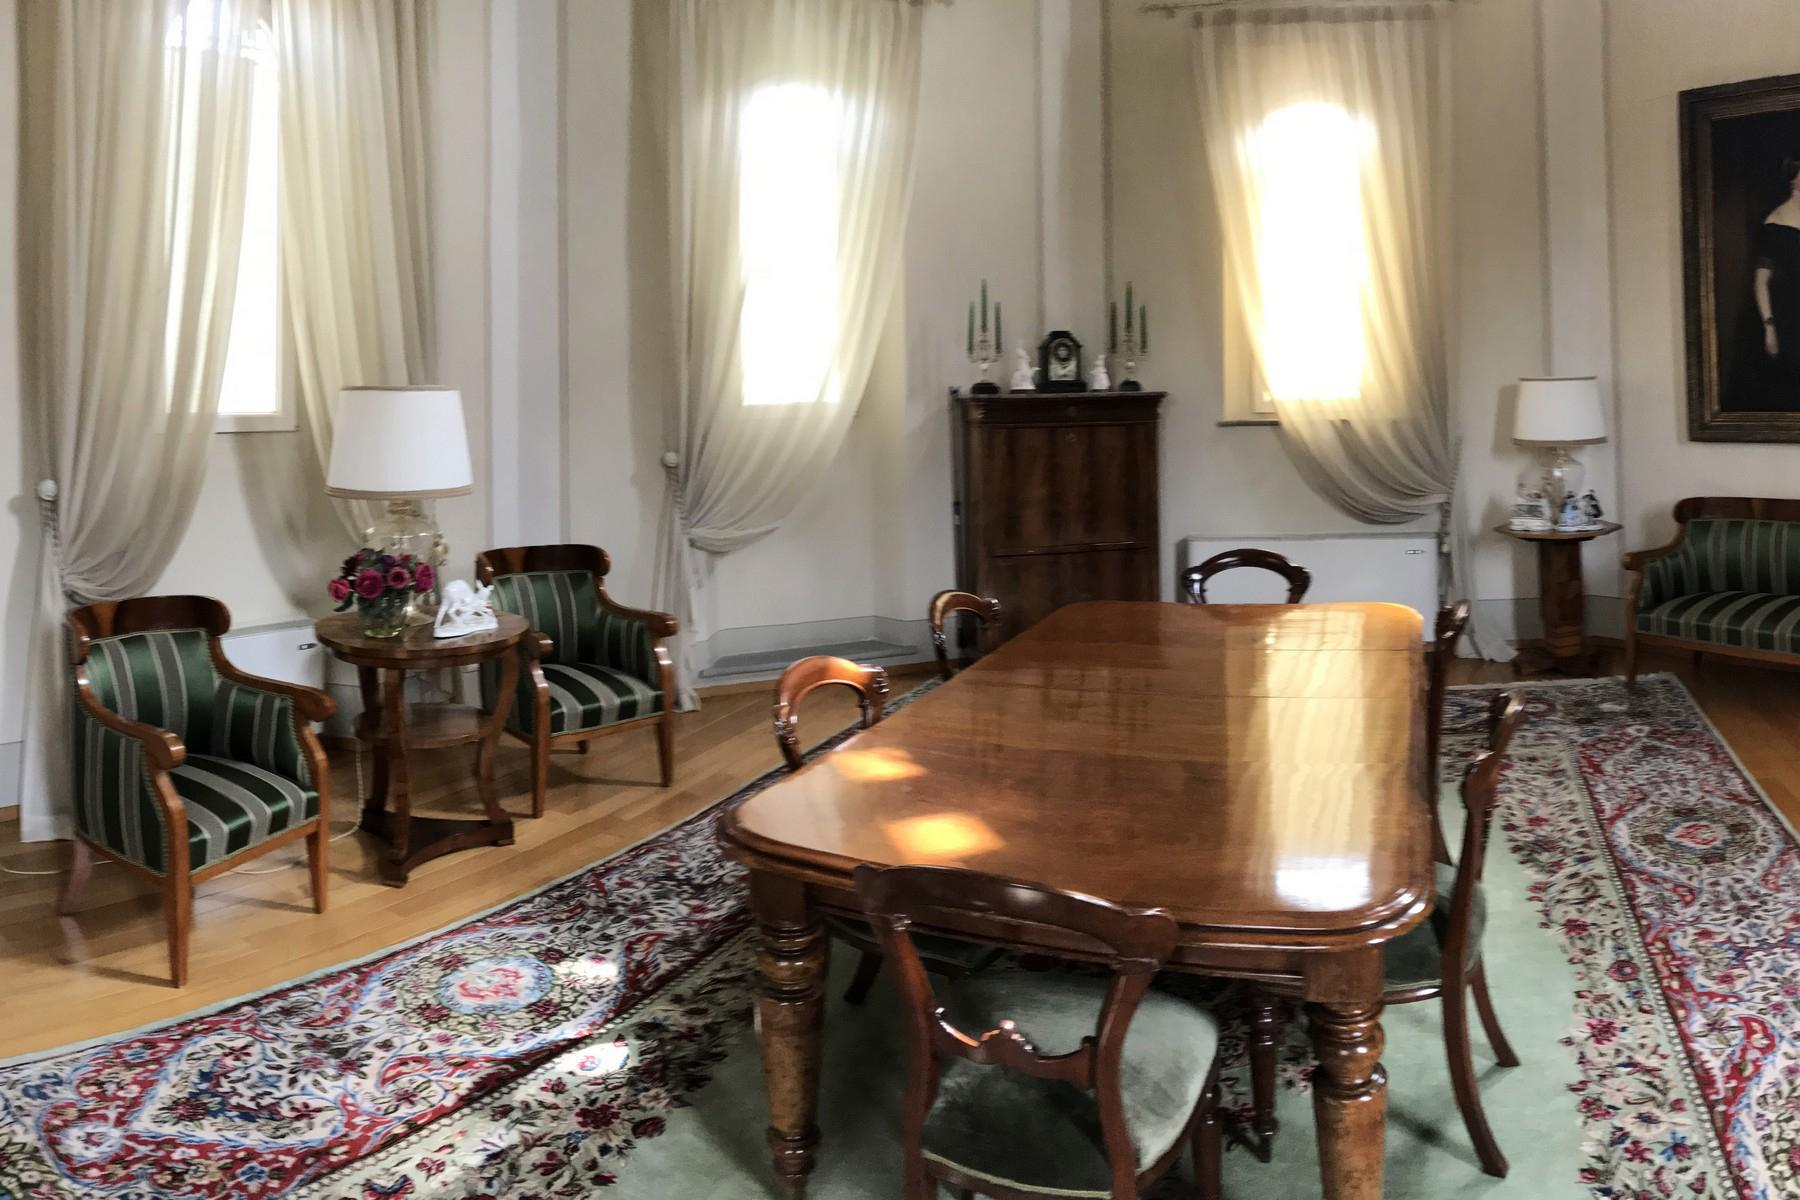 Flamboyant Top-floor Apartment with Tower in Bellosguardo, Florence - 27